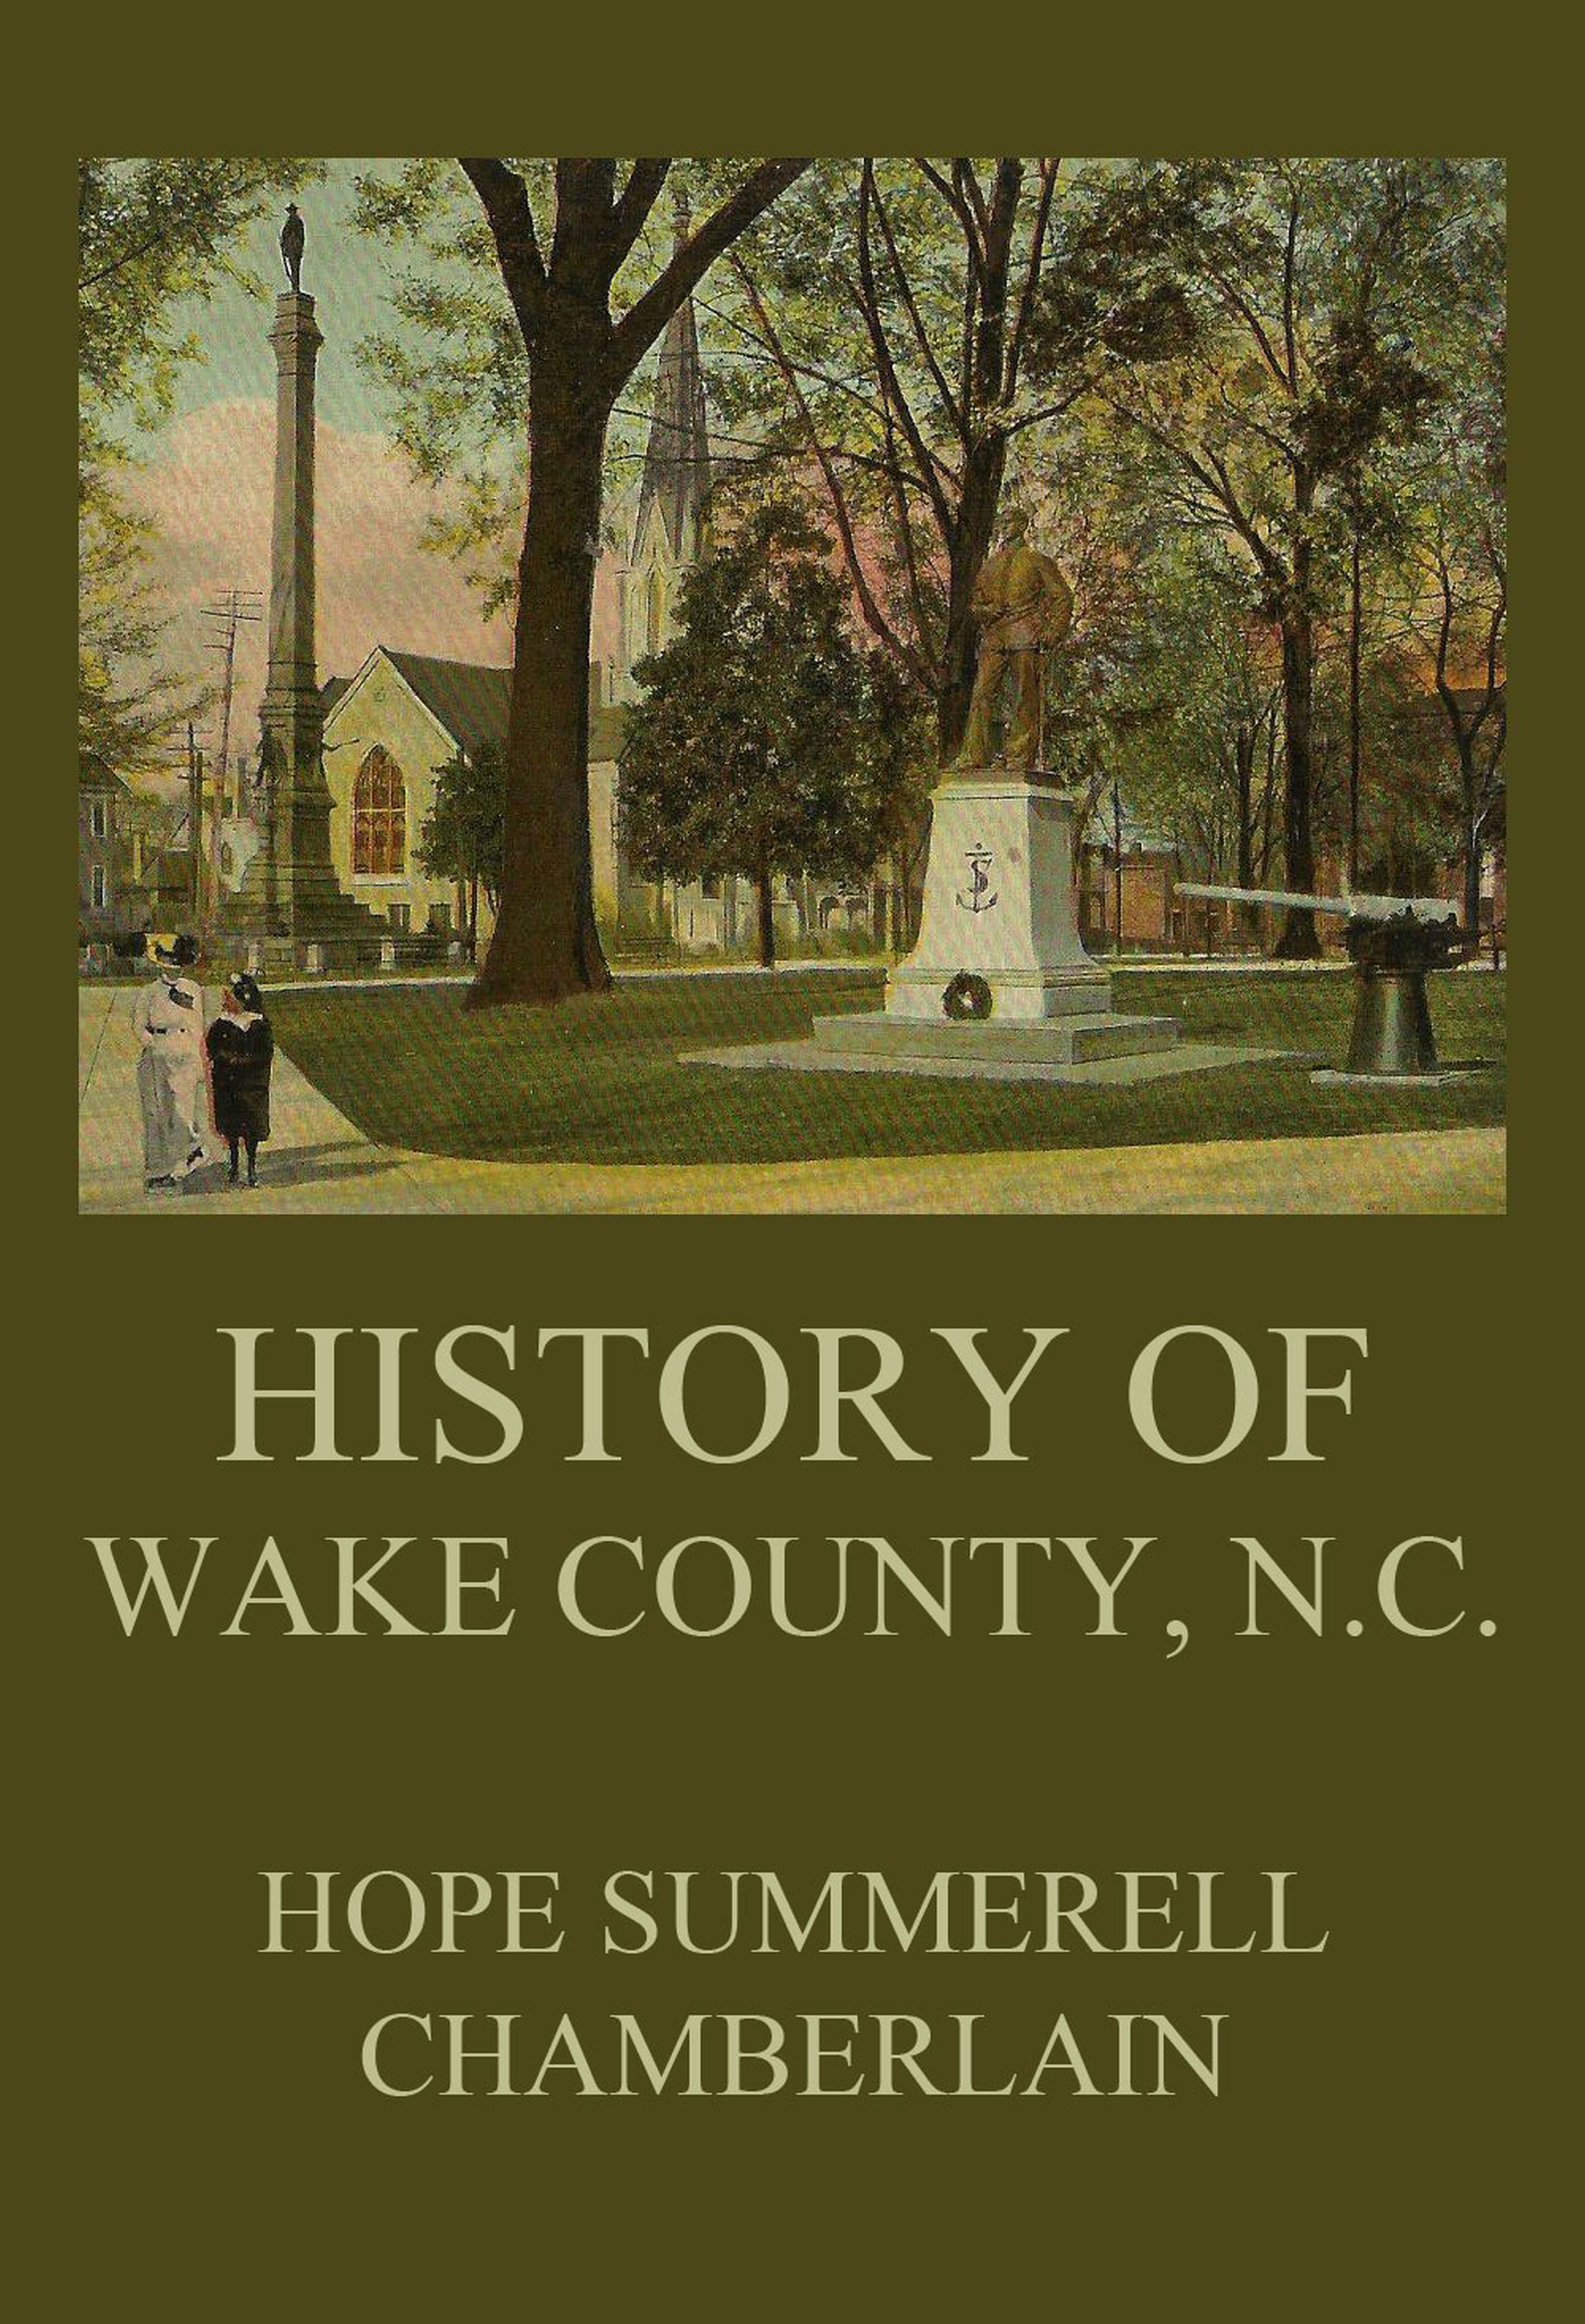 Hope Summerell Chamberlain History of Wake County, North Carolina john joseph briggs the history of melbourne in the county of derby including biographical notices of the coke melbourne and hardinge families